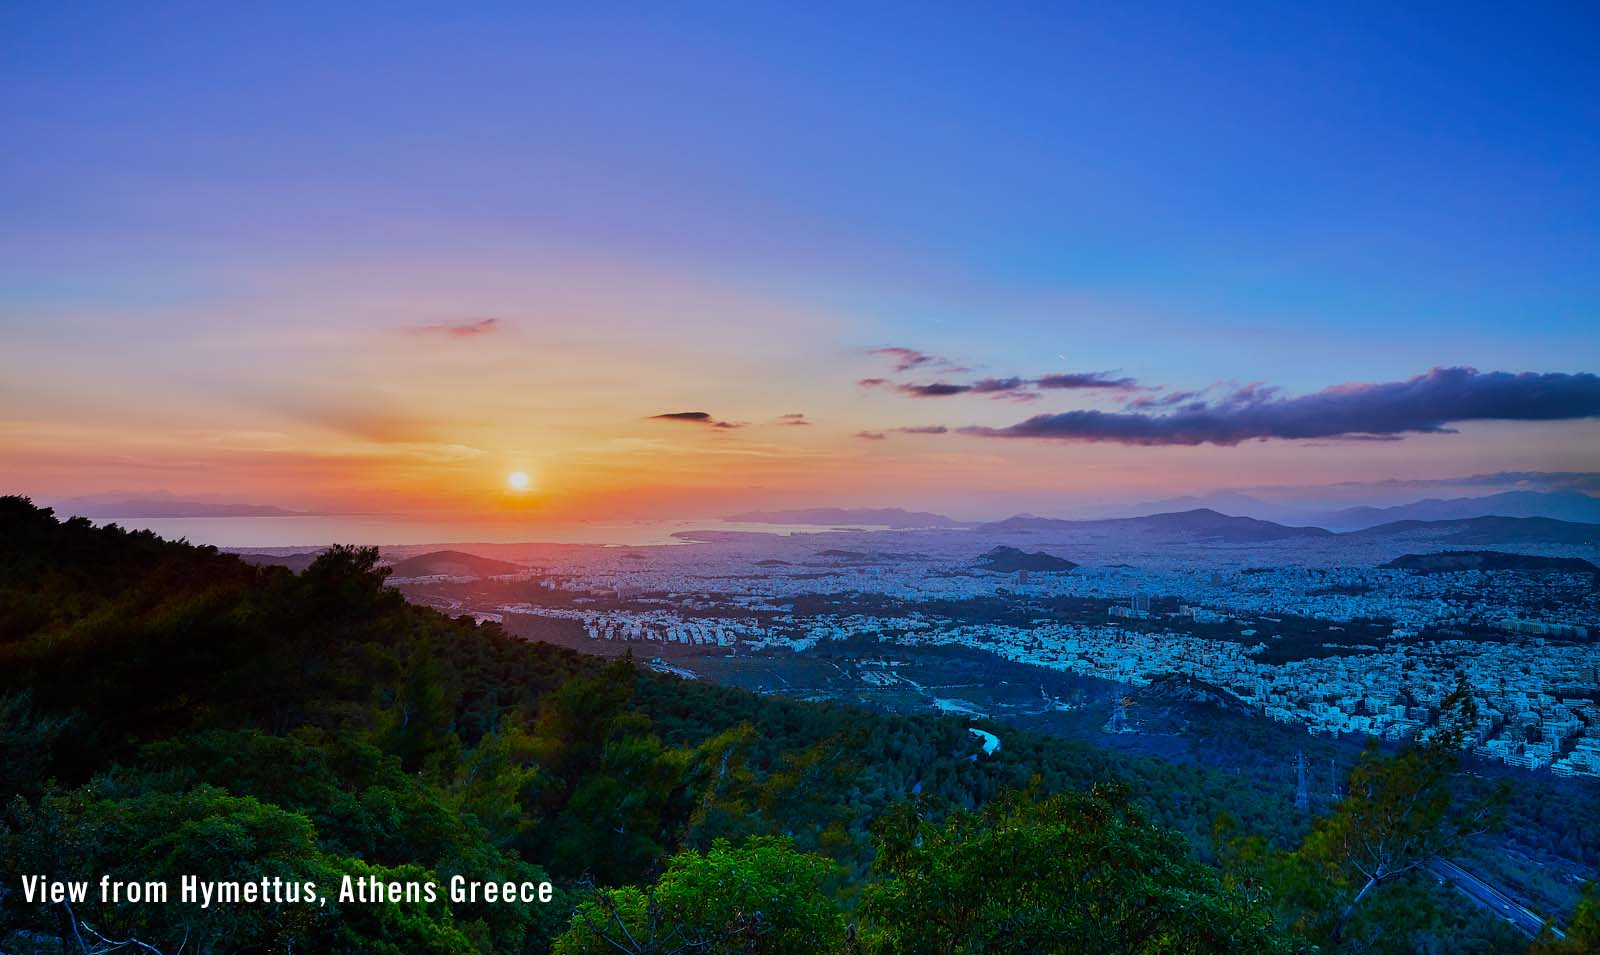 Enlarged view from Hymettus Mountain overlooking Athens Greece